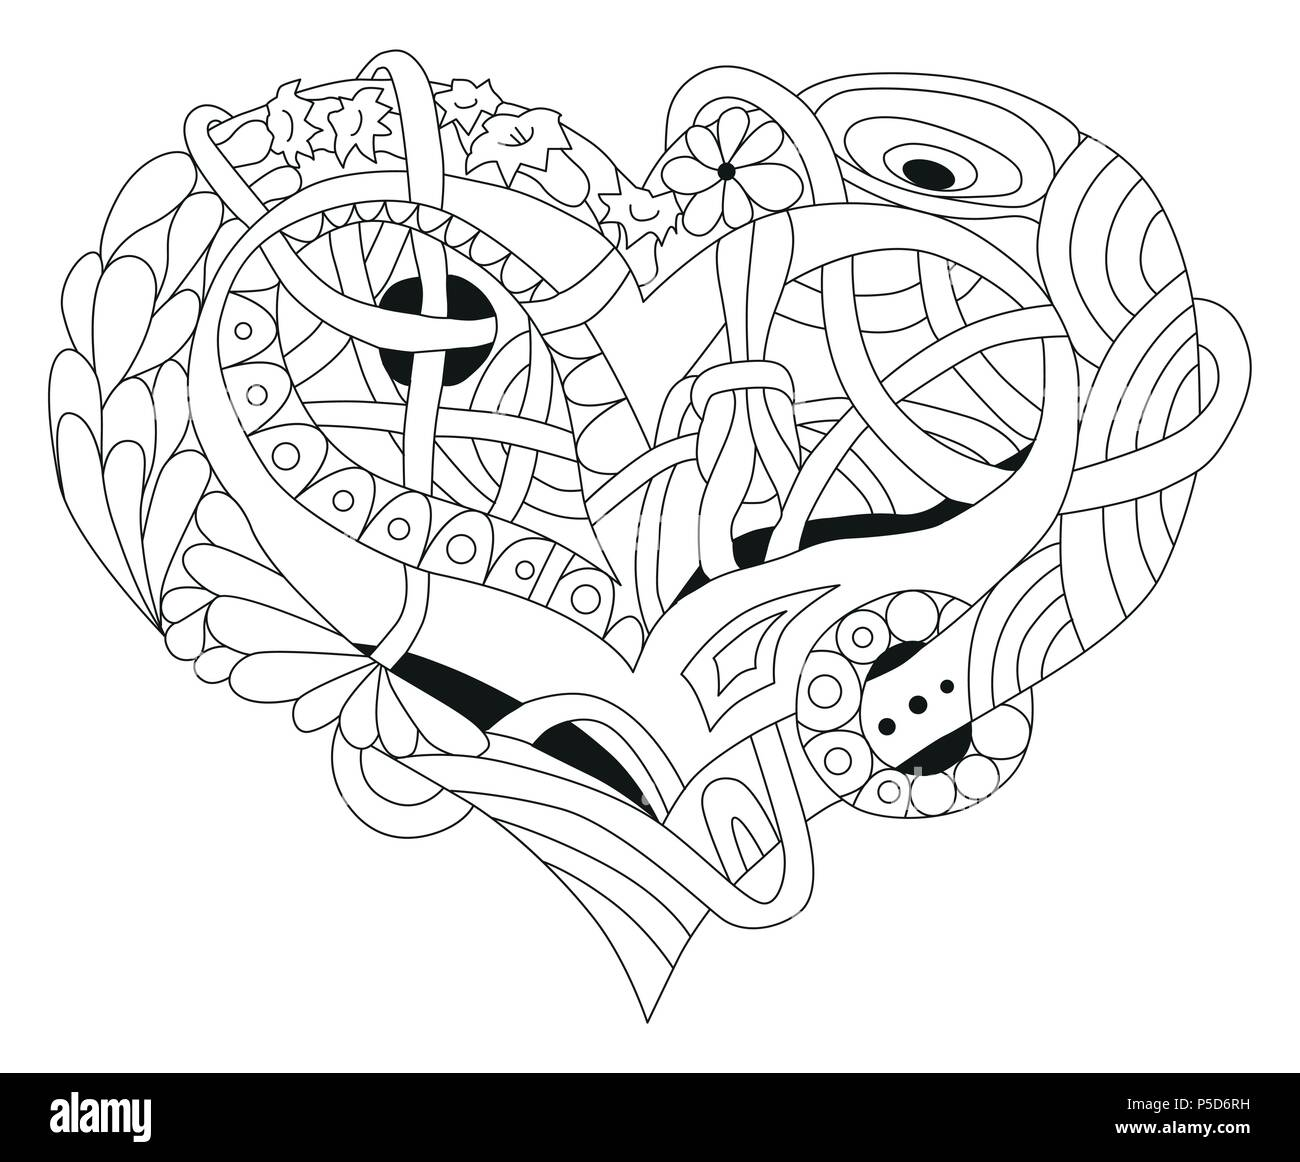 Vector Adult Coloring Book Textures. Hand-painted art design. Adult ...